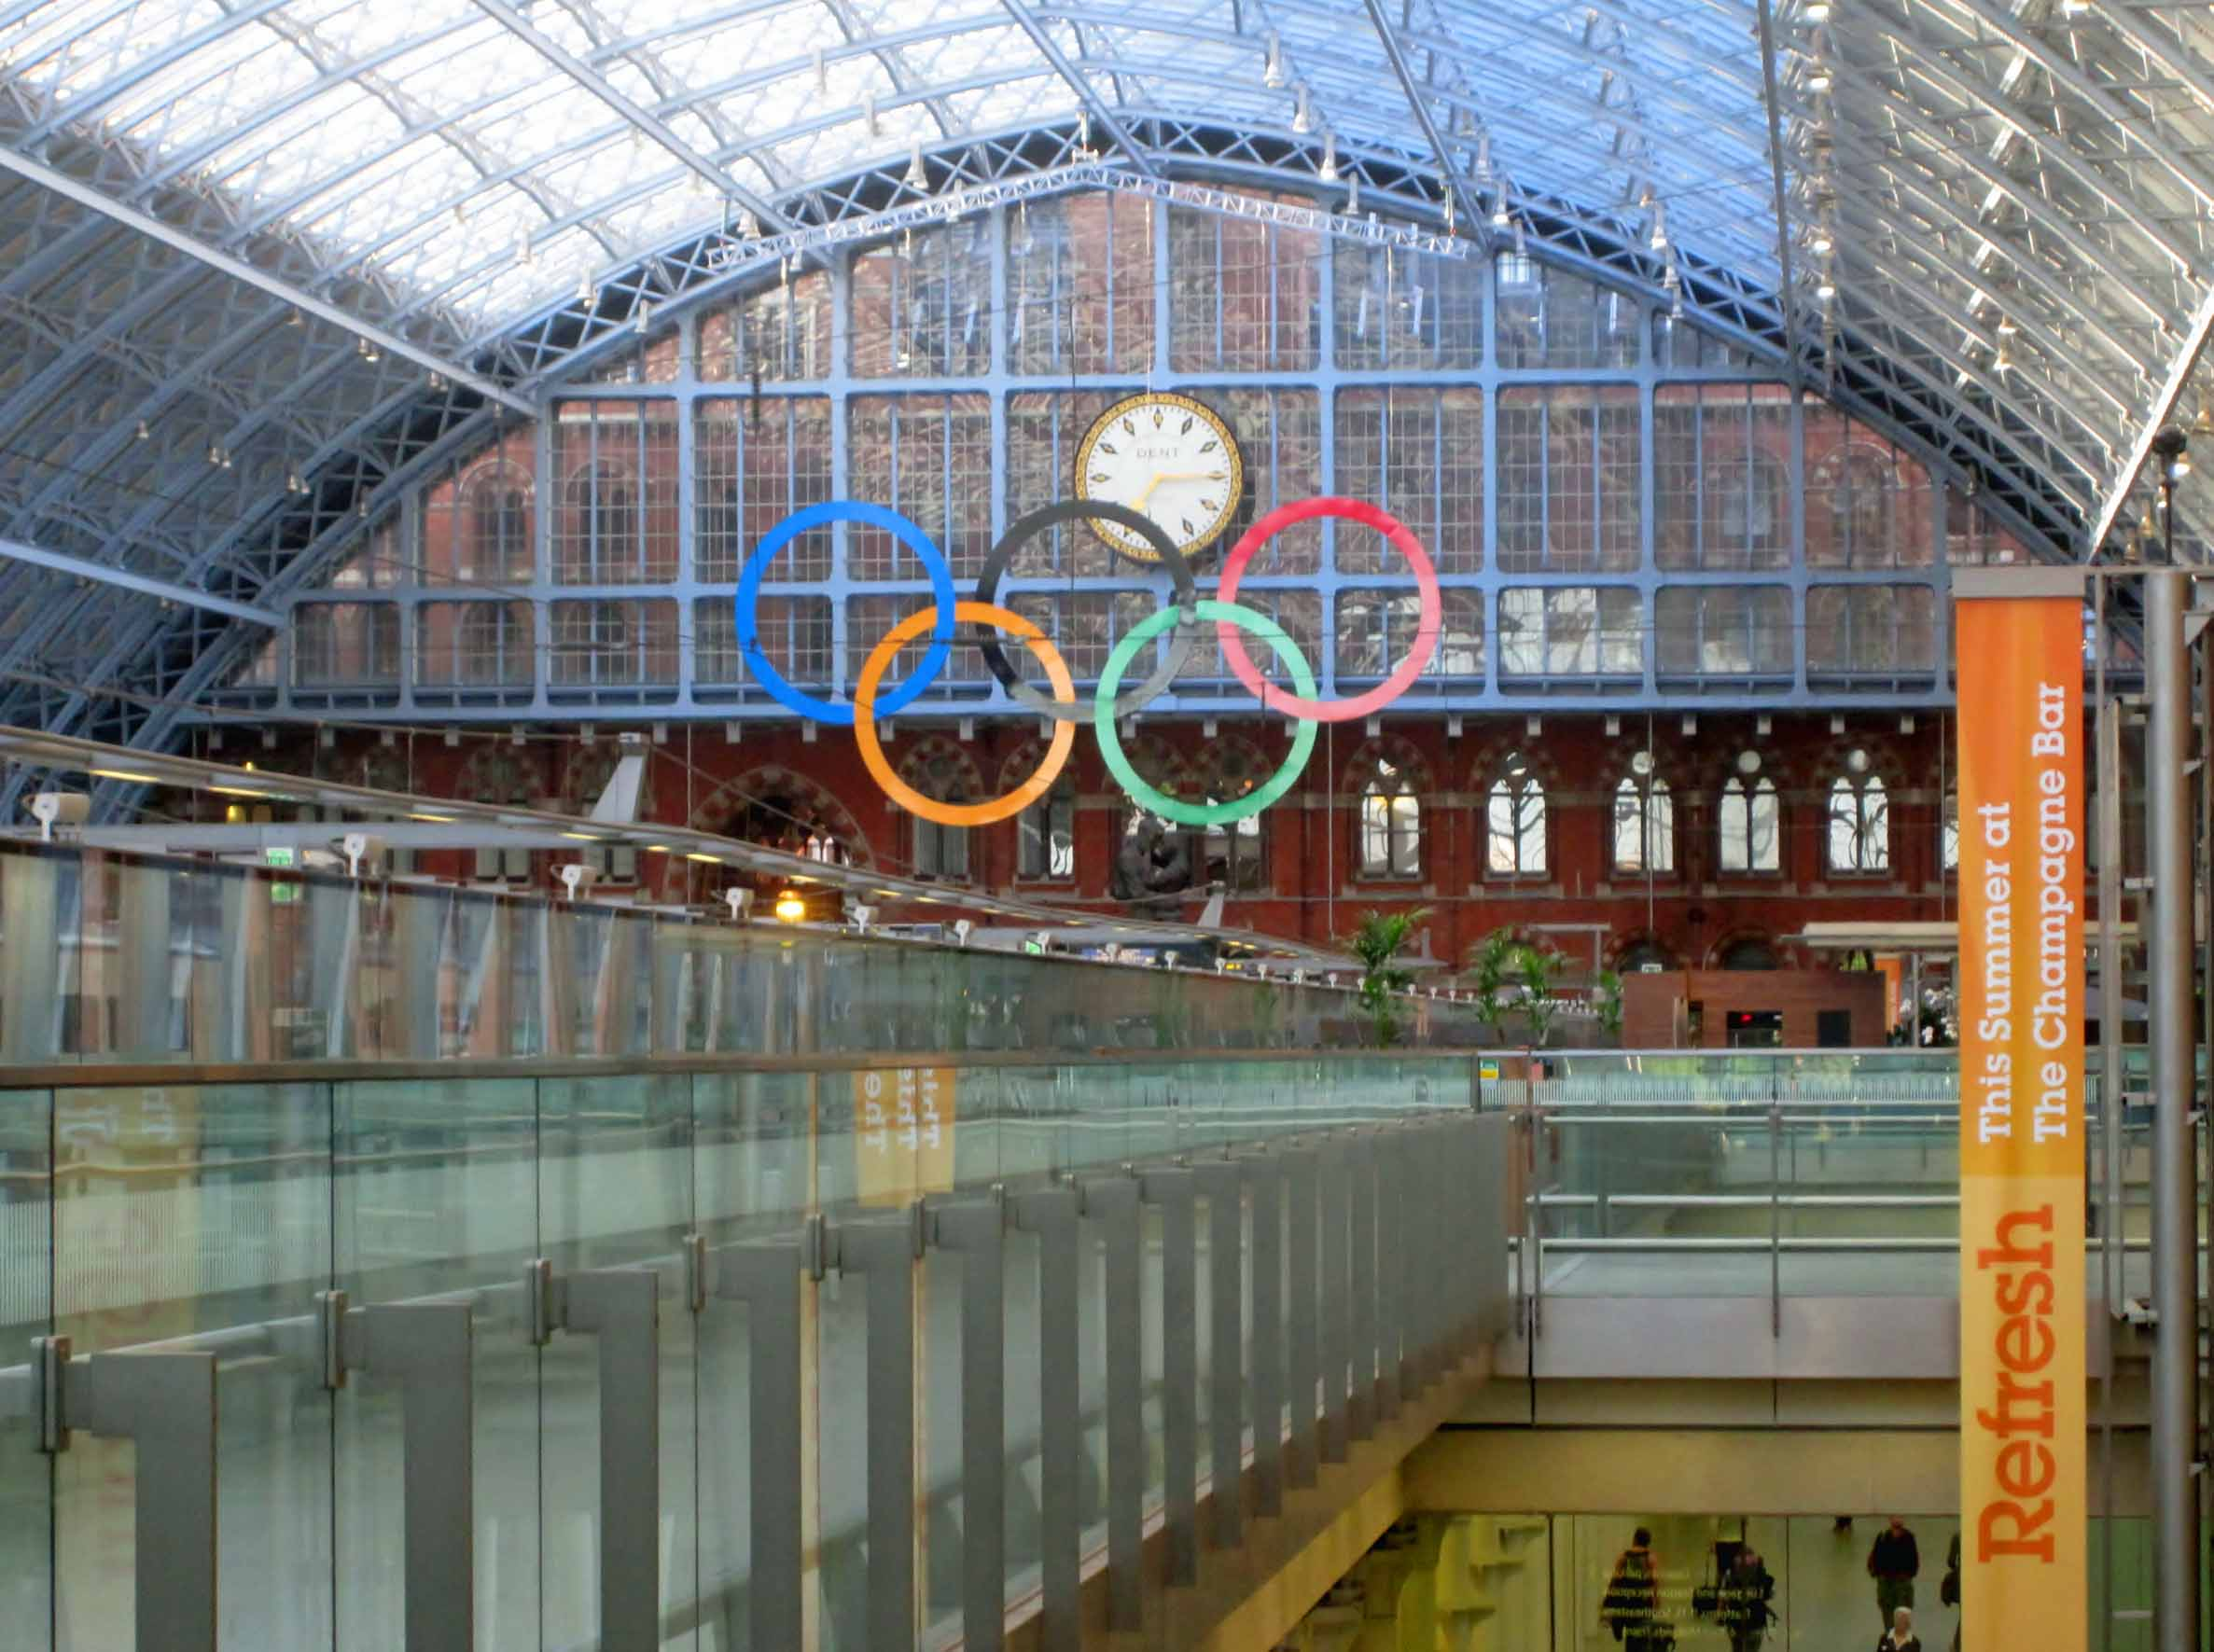 Arched station roof and Olympic rings